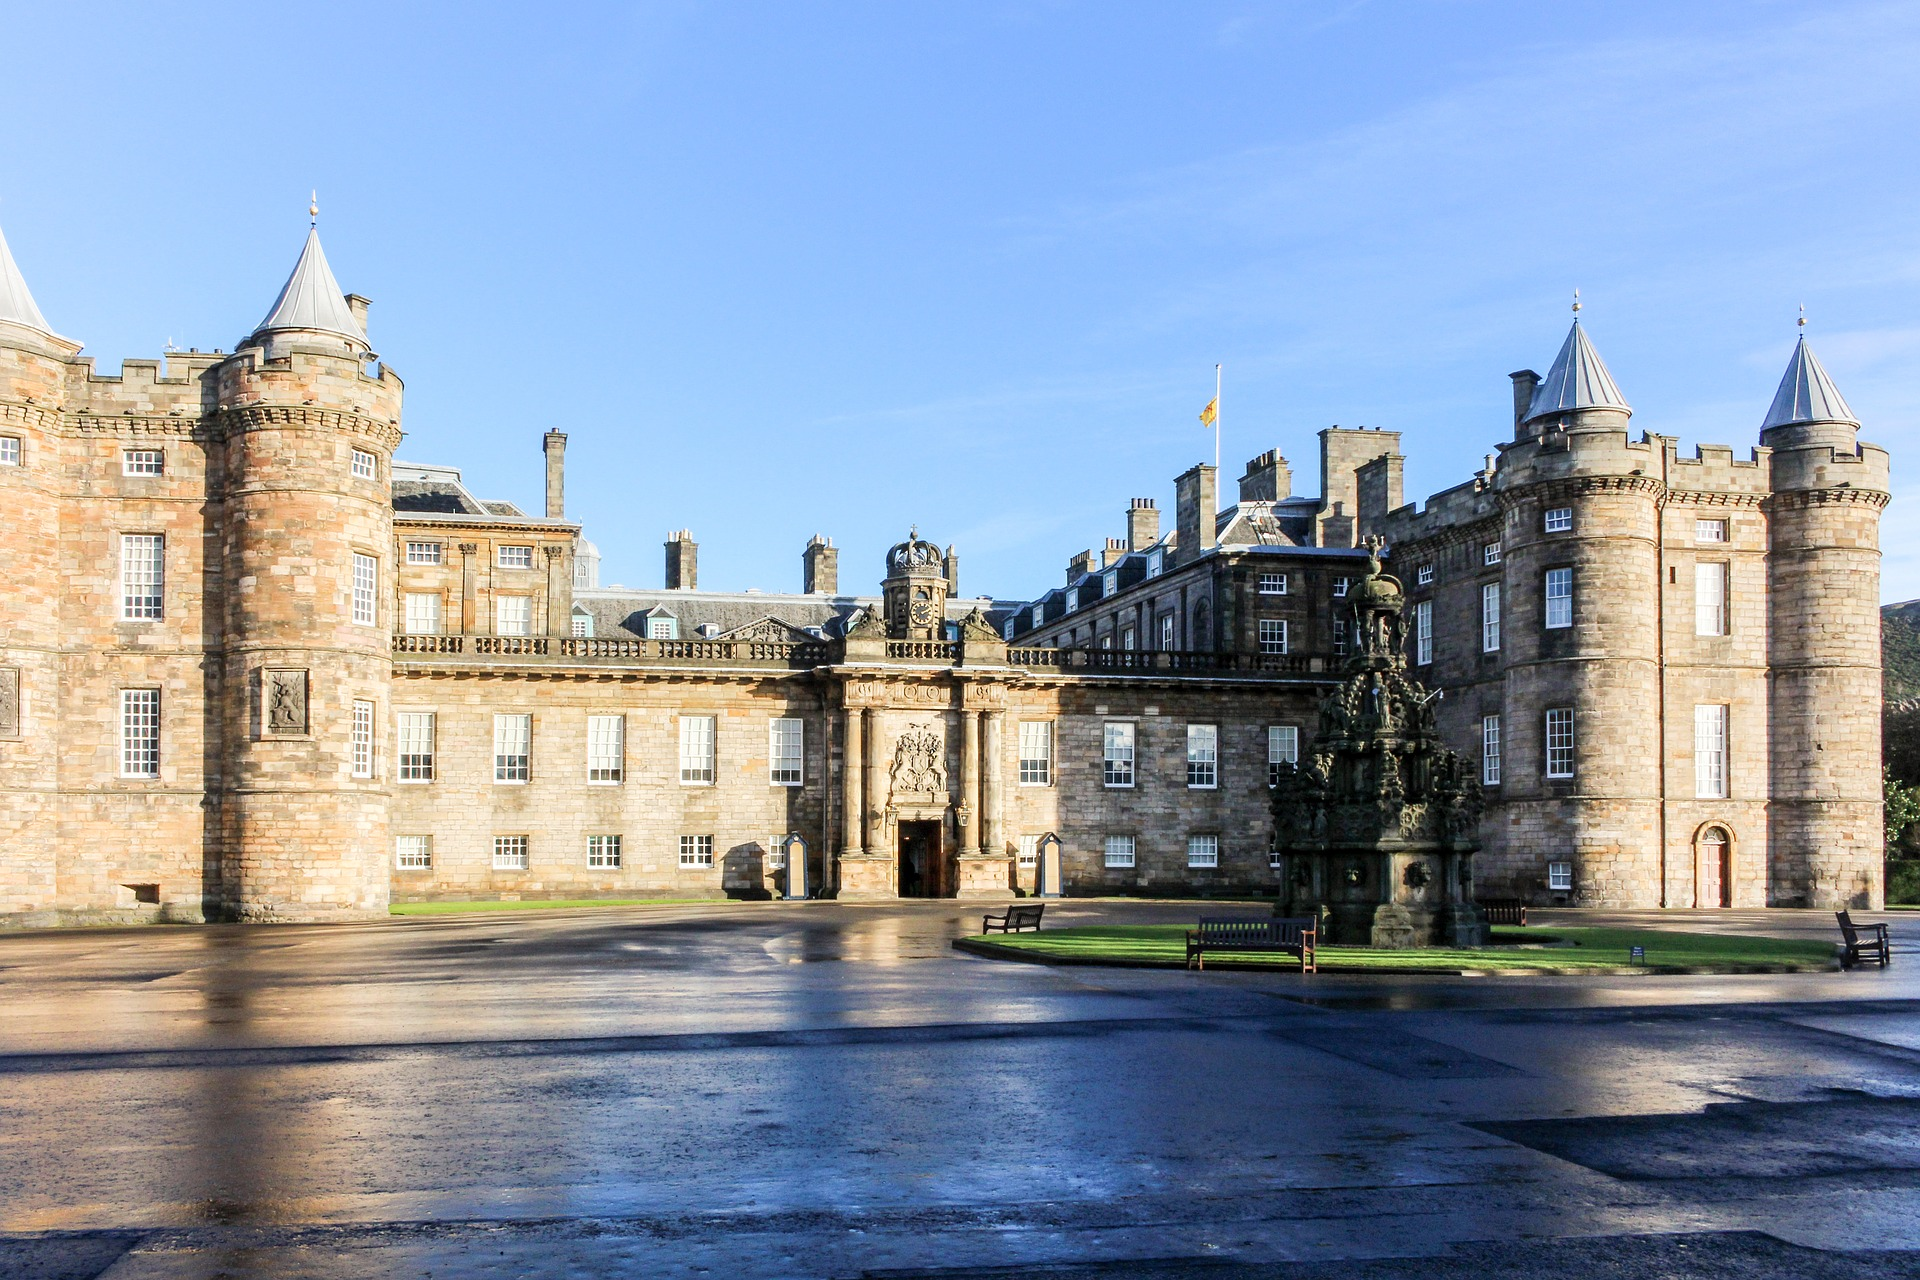 Historical places in Scotland